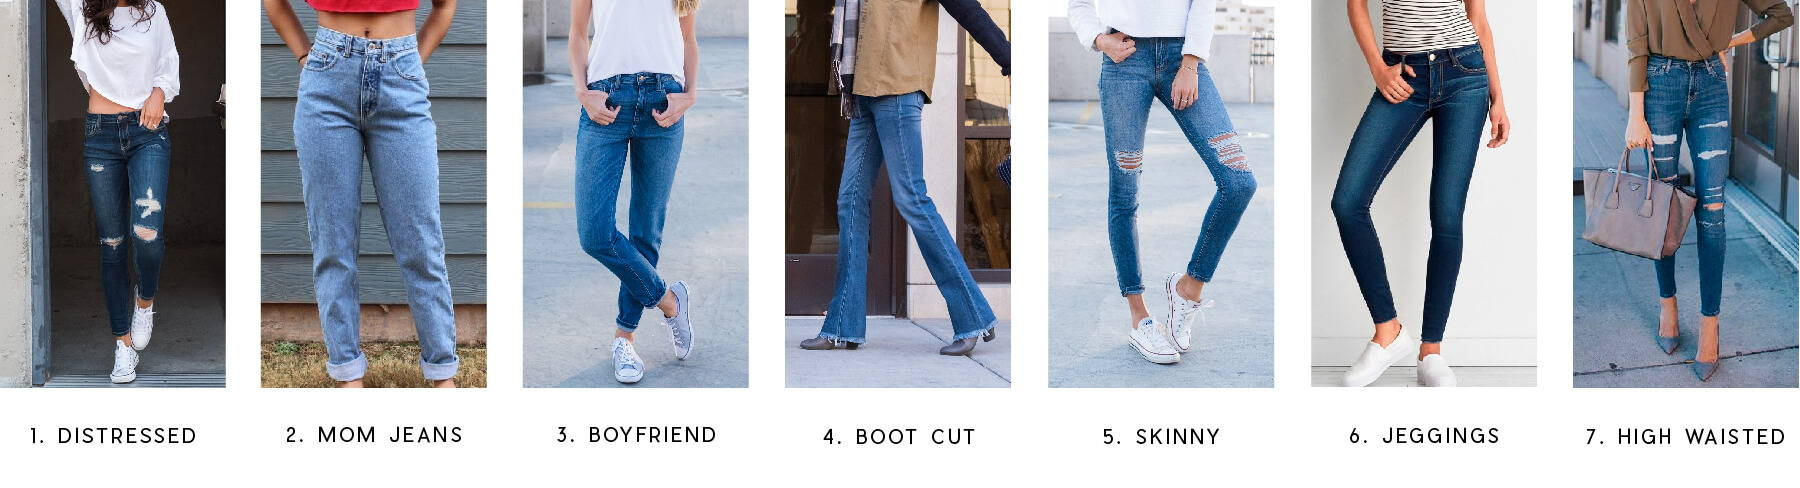 af10375b05 Jean Styles  Everything You Need To Know - Bella Ella Boutique